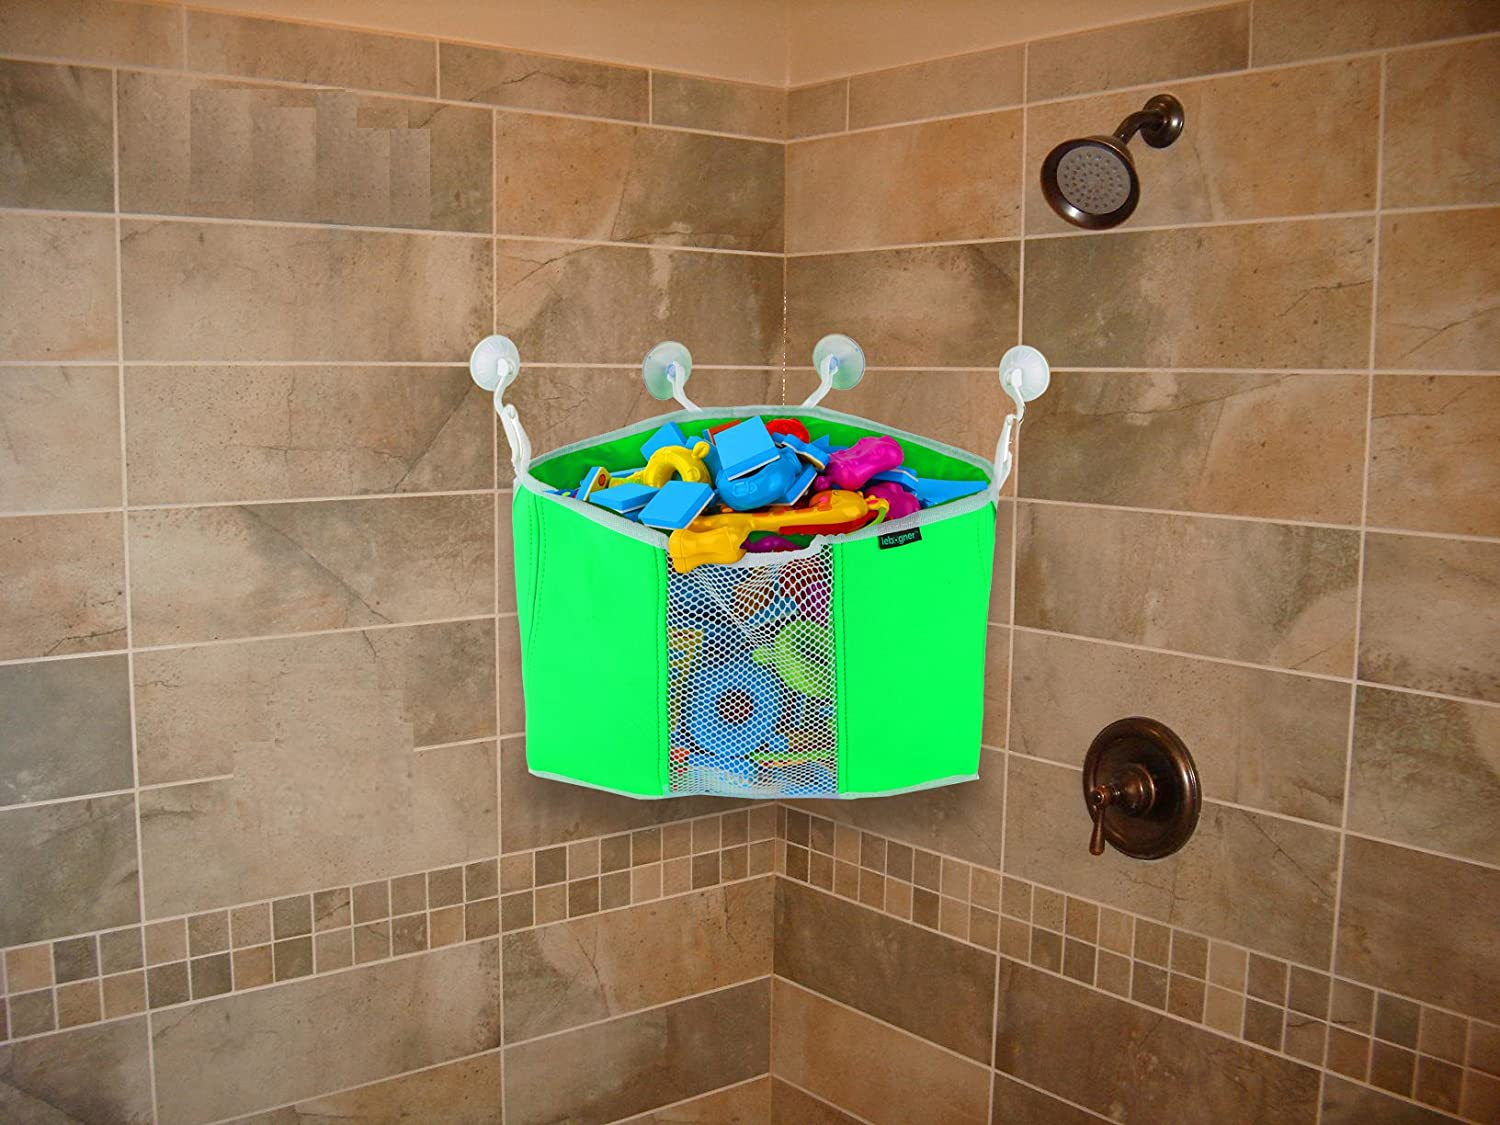 Amazon.com : Corner Toy Shower Caddy By Lebogner - Baby Bath Toy ...